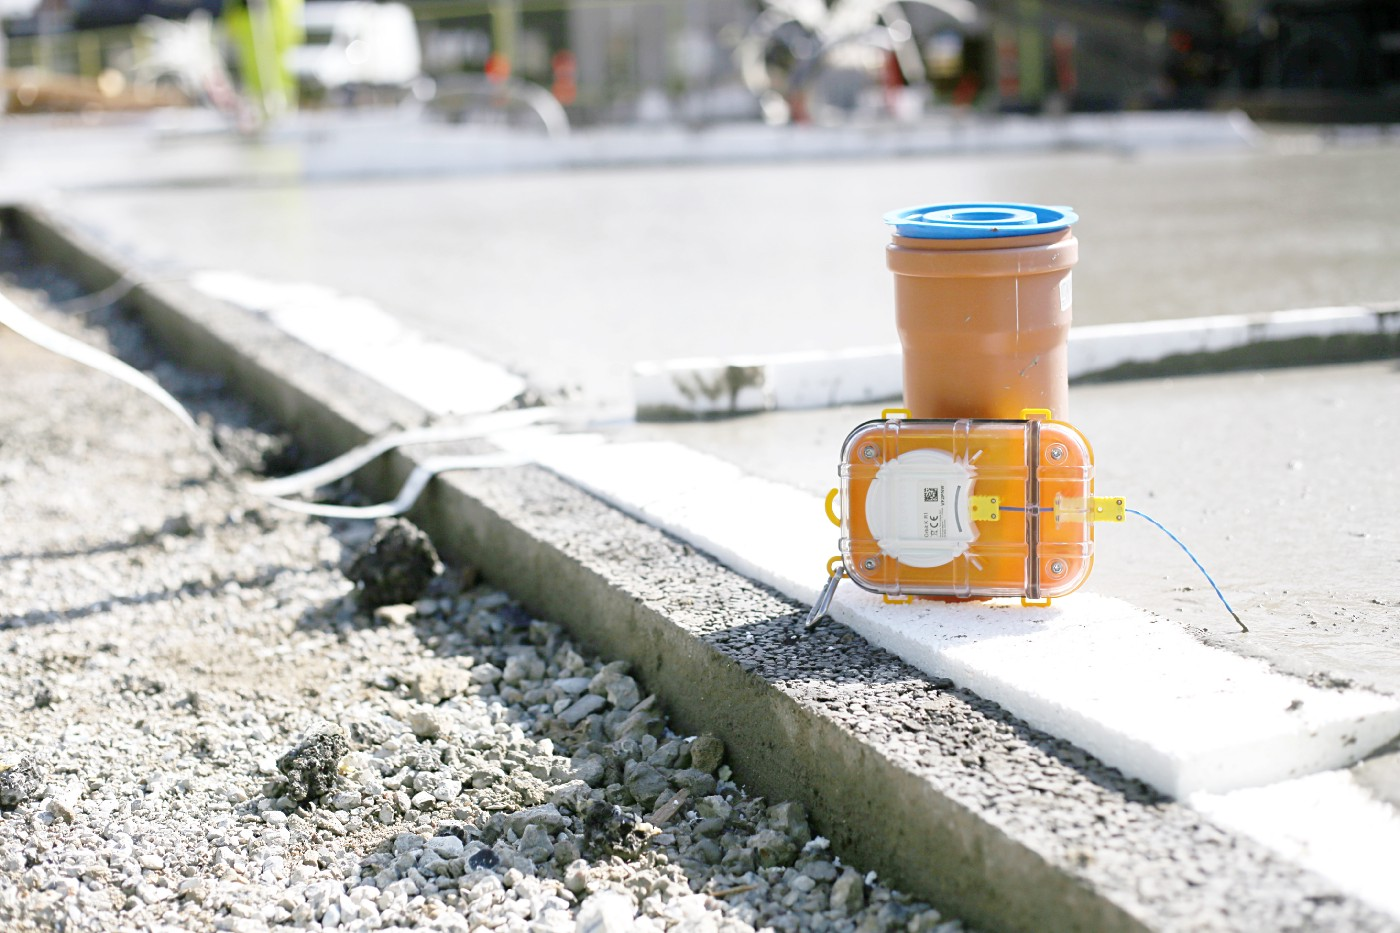 Maturix Sensors are attached to a structure, providing streamlined concrete thermal monitoring.